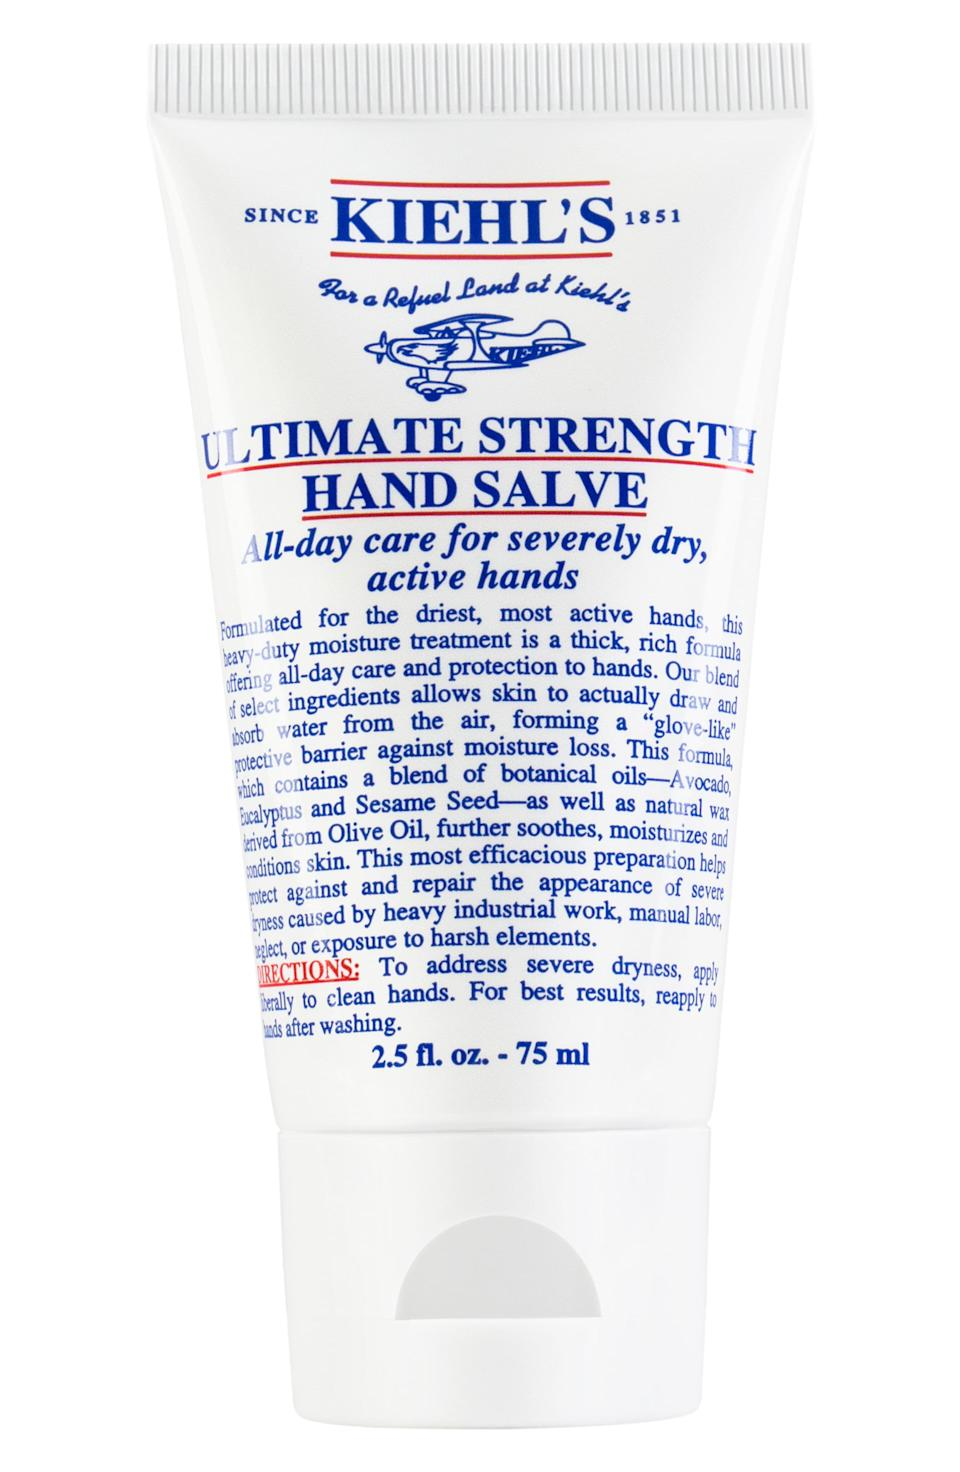 """<p><strong>Kiehl's</strong></p><p>nordstrom.com</p><p><strong>$16.00</strong></p><p><a href=""""https://go.redirectingat.com?id=74968X1596630&url=https%3A%2F%2Fshop.nordstrom.com%2Fs%2Fkiehls-since-1851-ultimate-strength-hand-salve%2F5050445%2Flite&sref=https%3A%2F%2Fwww.harpersbazaar.com%2Fbeauty%2Fg33481900%2Fnordstrom-anniversary-sale-2020-best-beauty-makeup-deals%2F"""" rel=""""nofollow noopener"""" target=""""_blank"""" data-ylk=""""slk:Shop Now"""" class=""""link rapid-noclick-resp"""">Shop Now</a></p><p><strong>Sale: $10.50</strong></p><p>After sale: $16</p><p>Even though it's ninety degrees and humid right now, dry hand season is just around the corner. (And if your hands are already dry from all the rigorous hand-washing, know that our bright red knuckles are right there with yours). Here, a rare chance to snag Kiehl's legendary hand salve at such a steeply discounted price. </p>"""